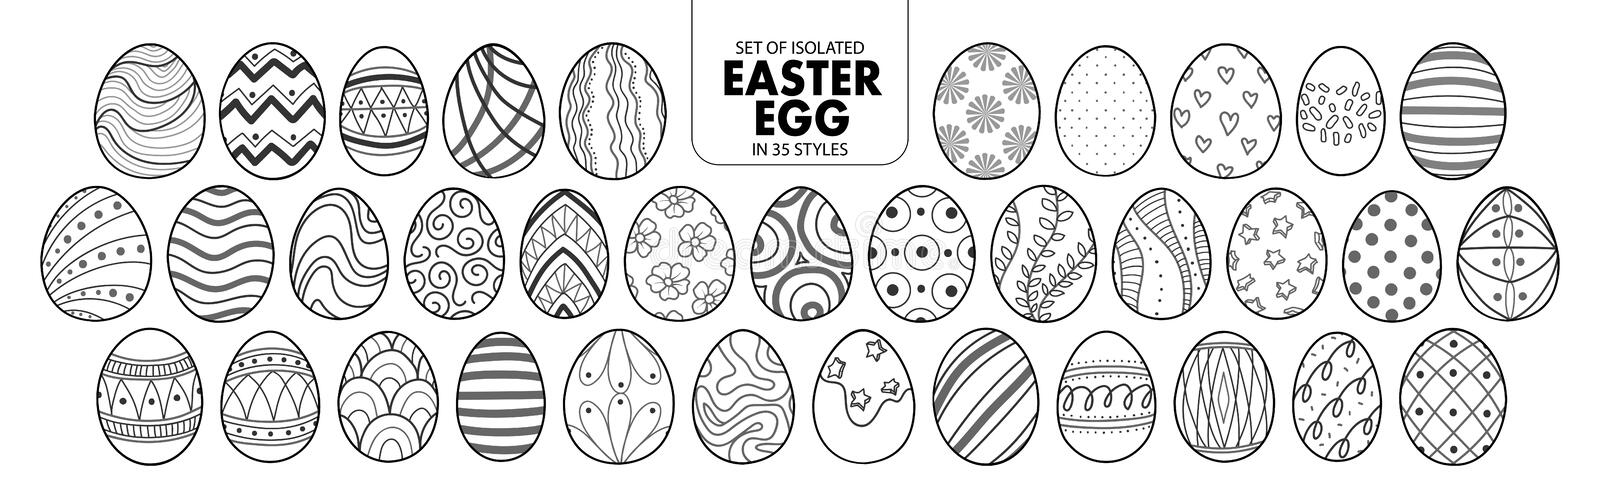 Set of isolated Easter eggs in 35 styles. vector illustration